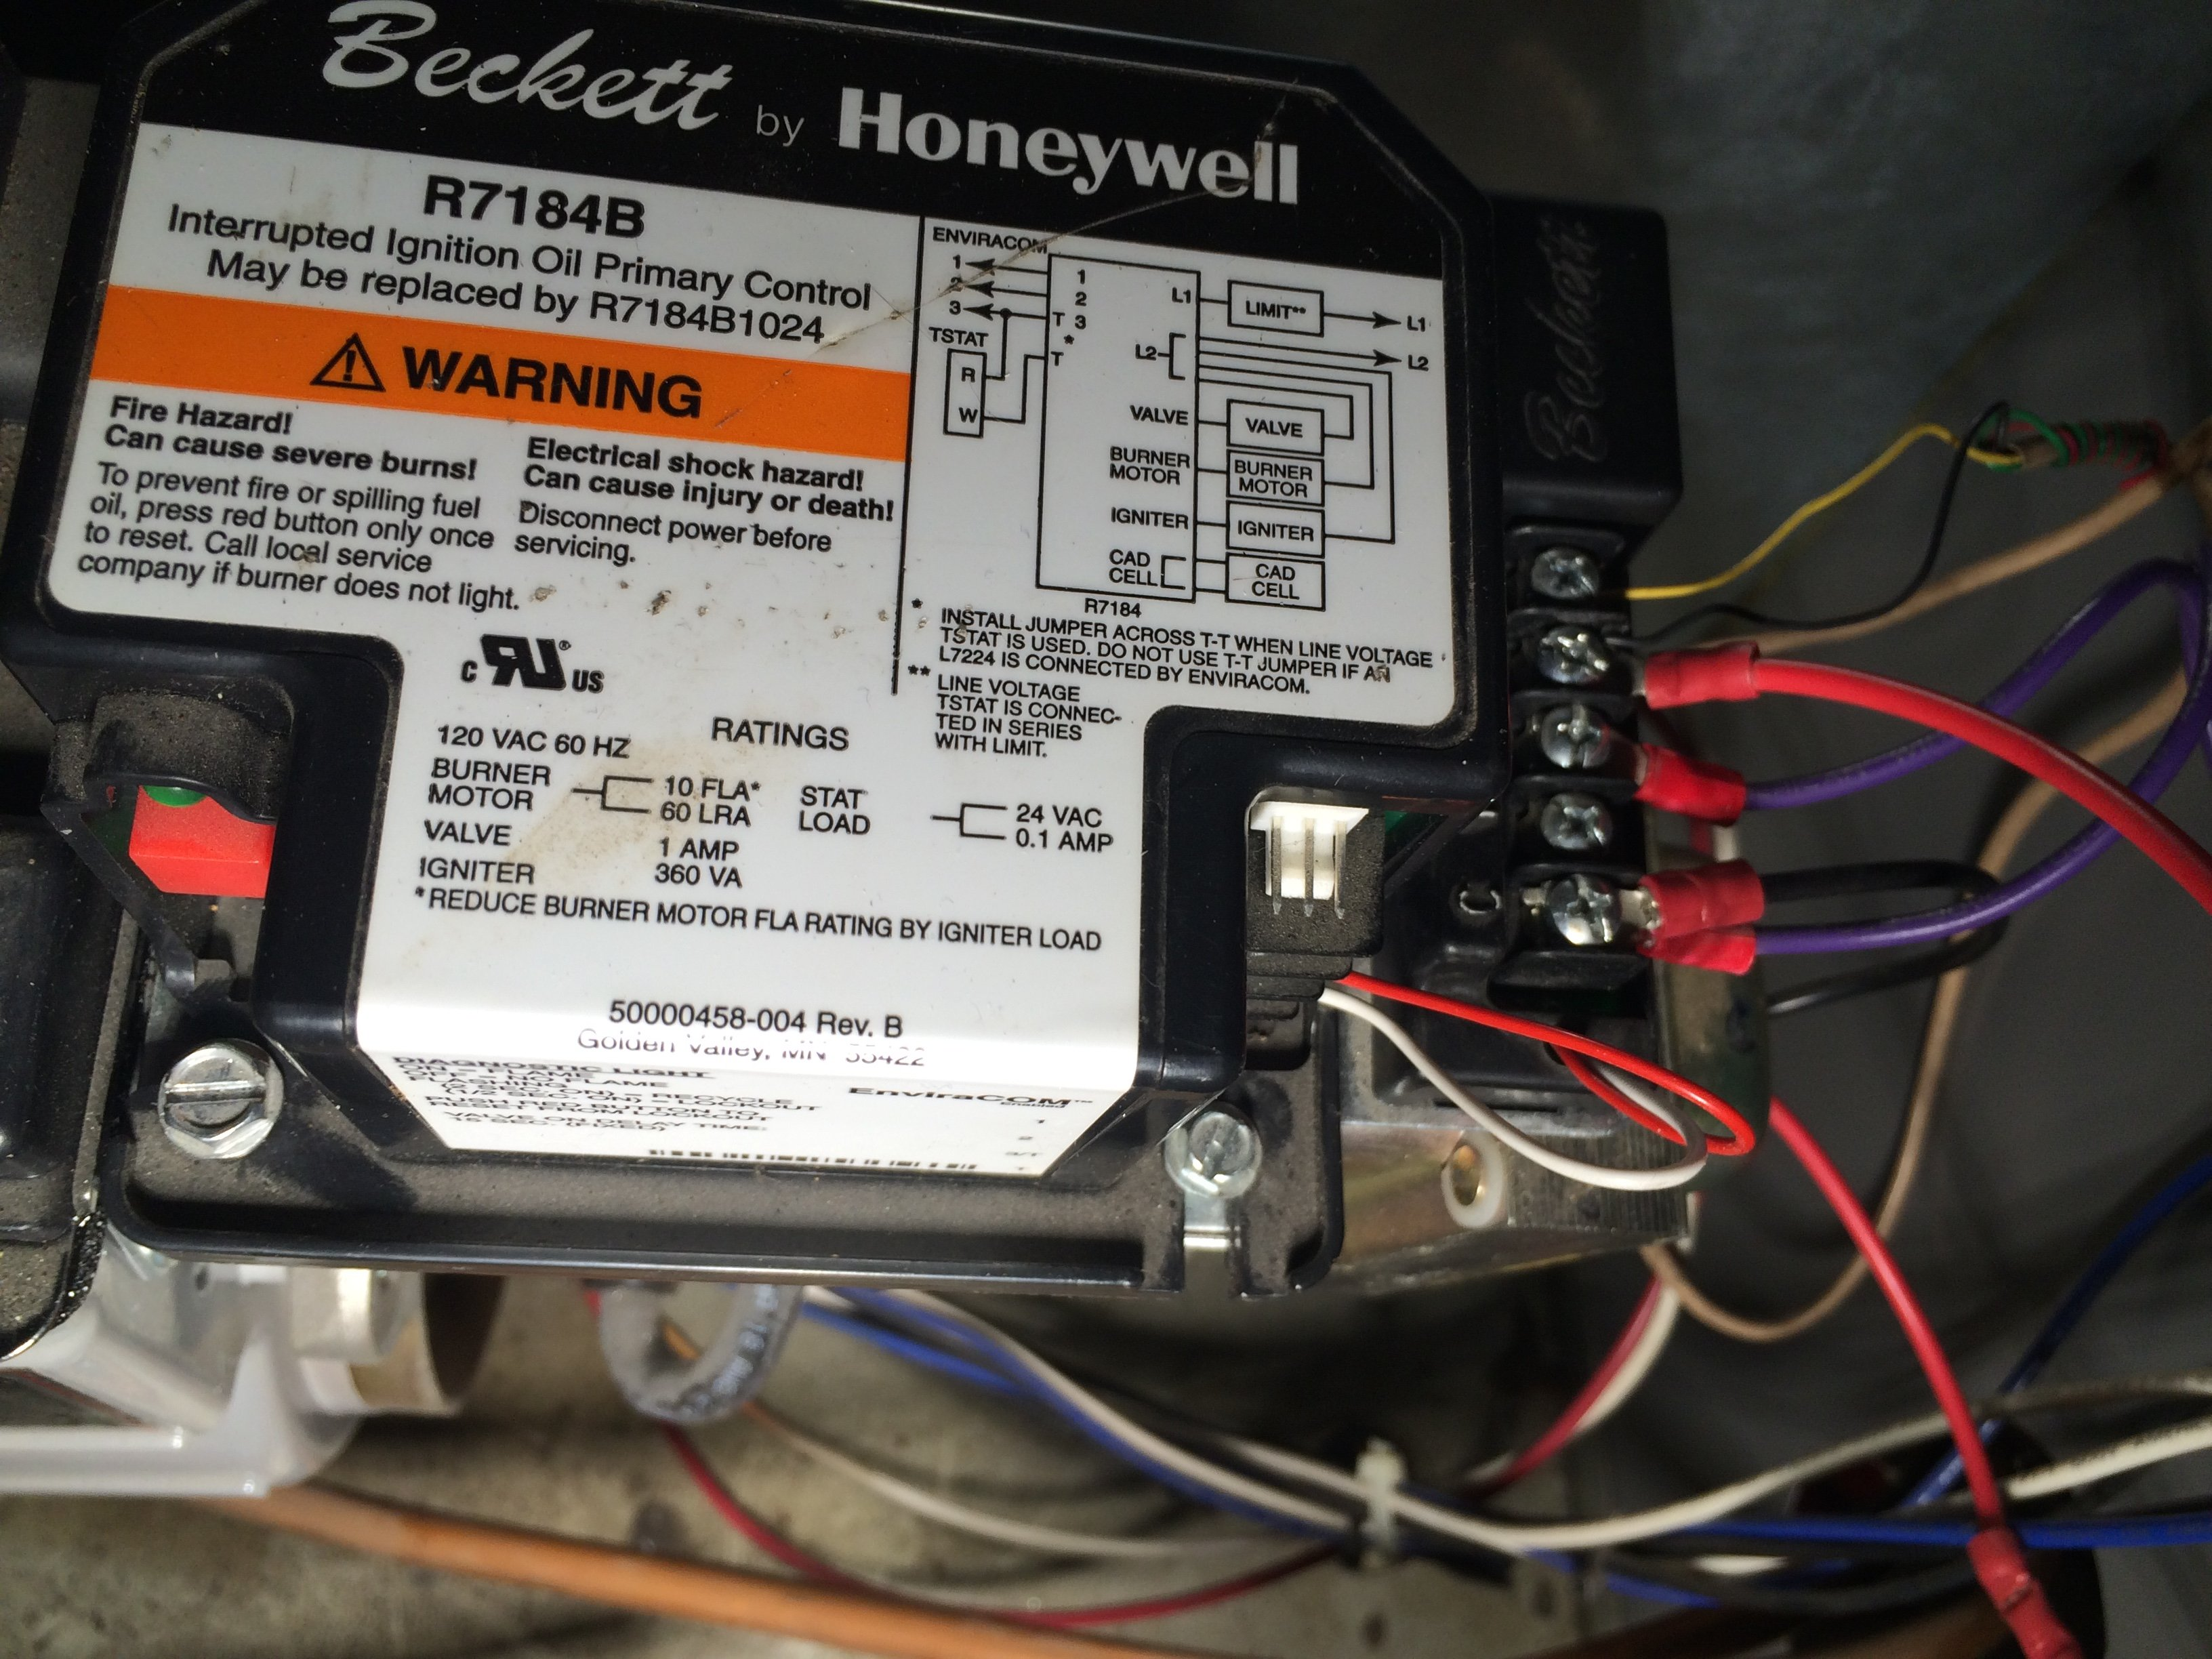 R7184 Interrupted Electronic Oil Primary - Honeywell